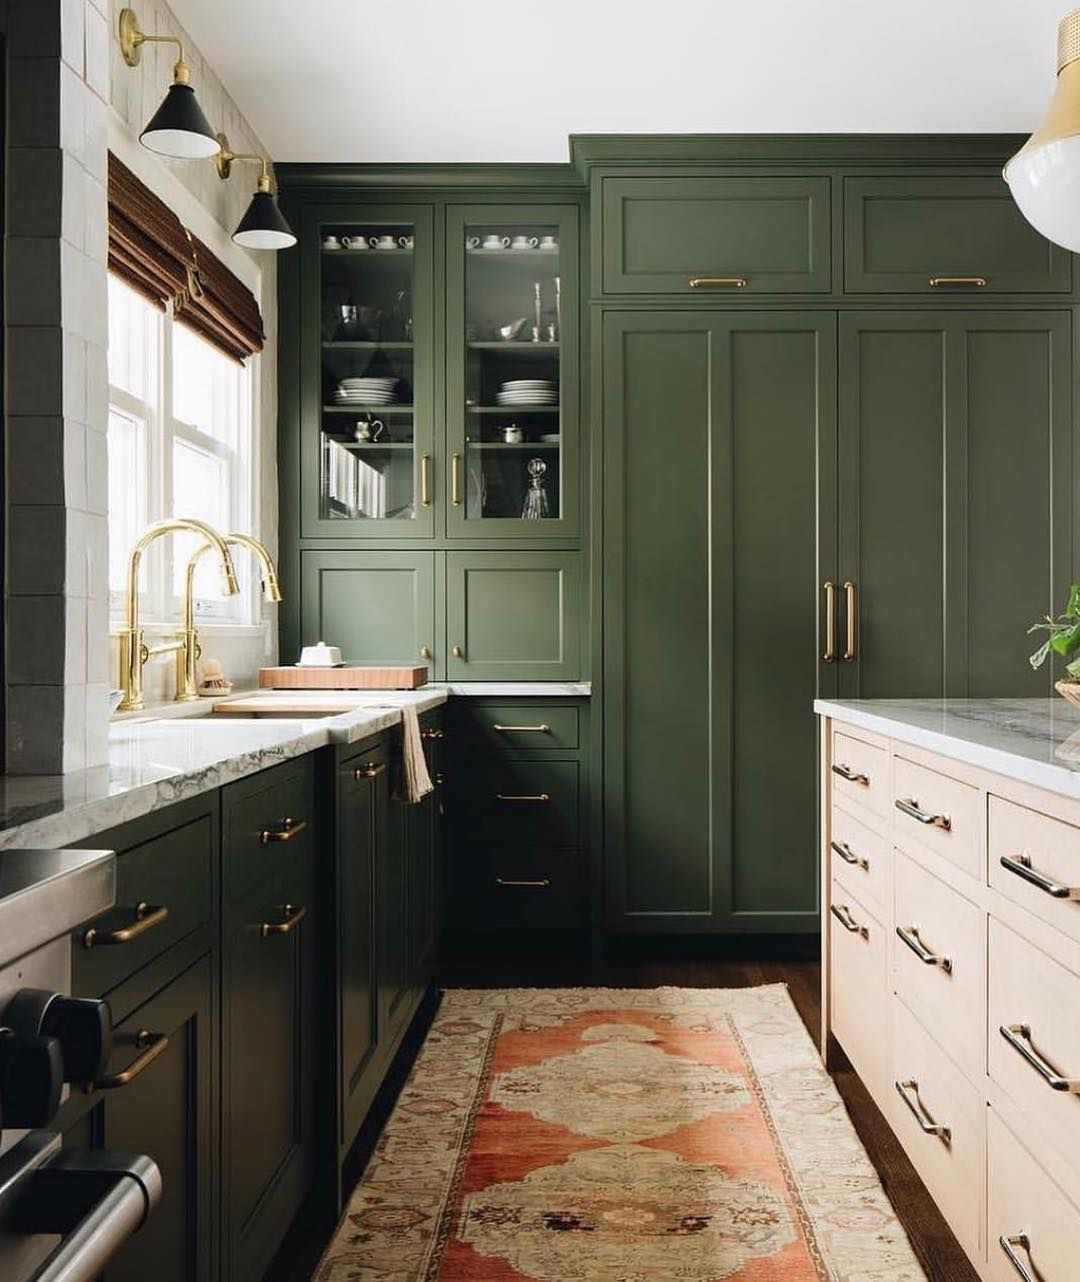 Decorist On Instagram This Olive Green And Brass Kitchen Has Us